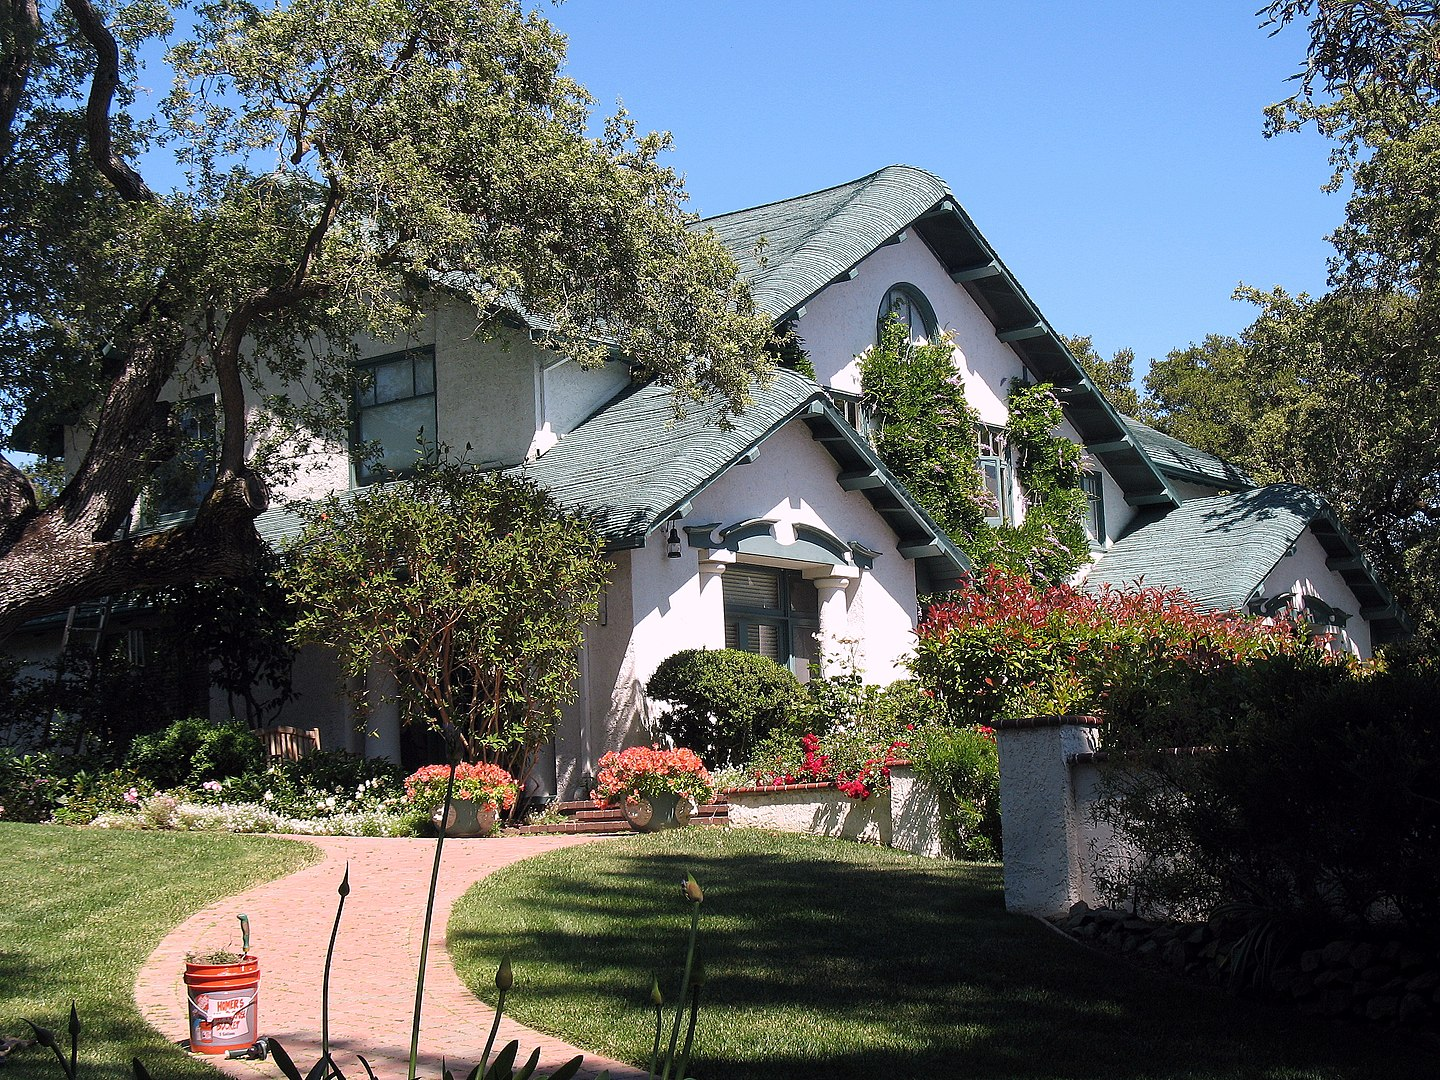 2010 Photo: MacFarland House, 775 Santa Ynez St., Stanford, CA